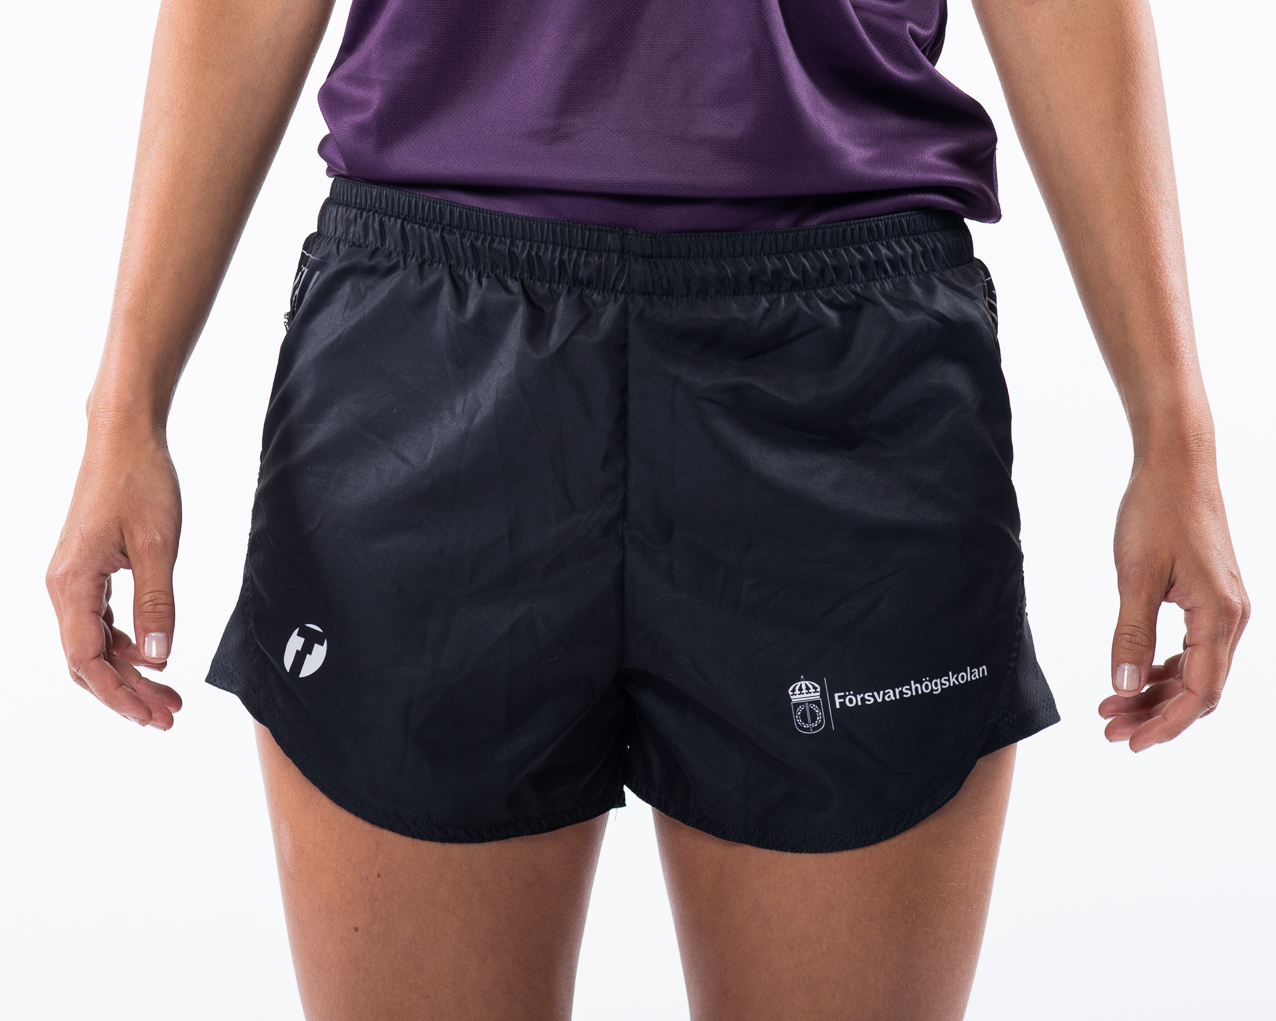 Women's shorts, front